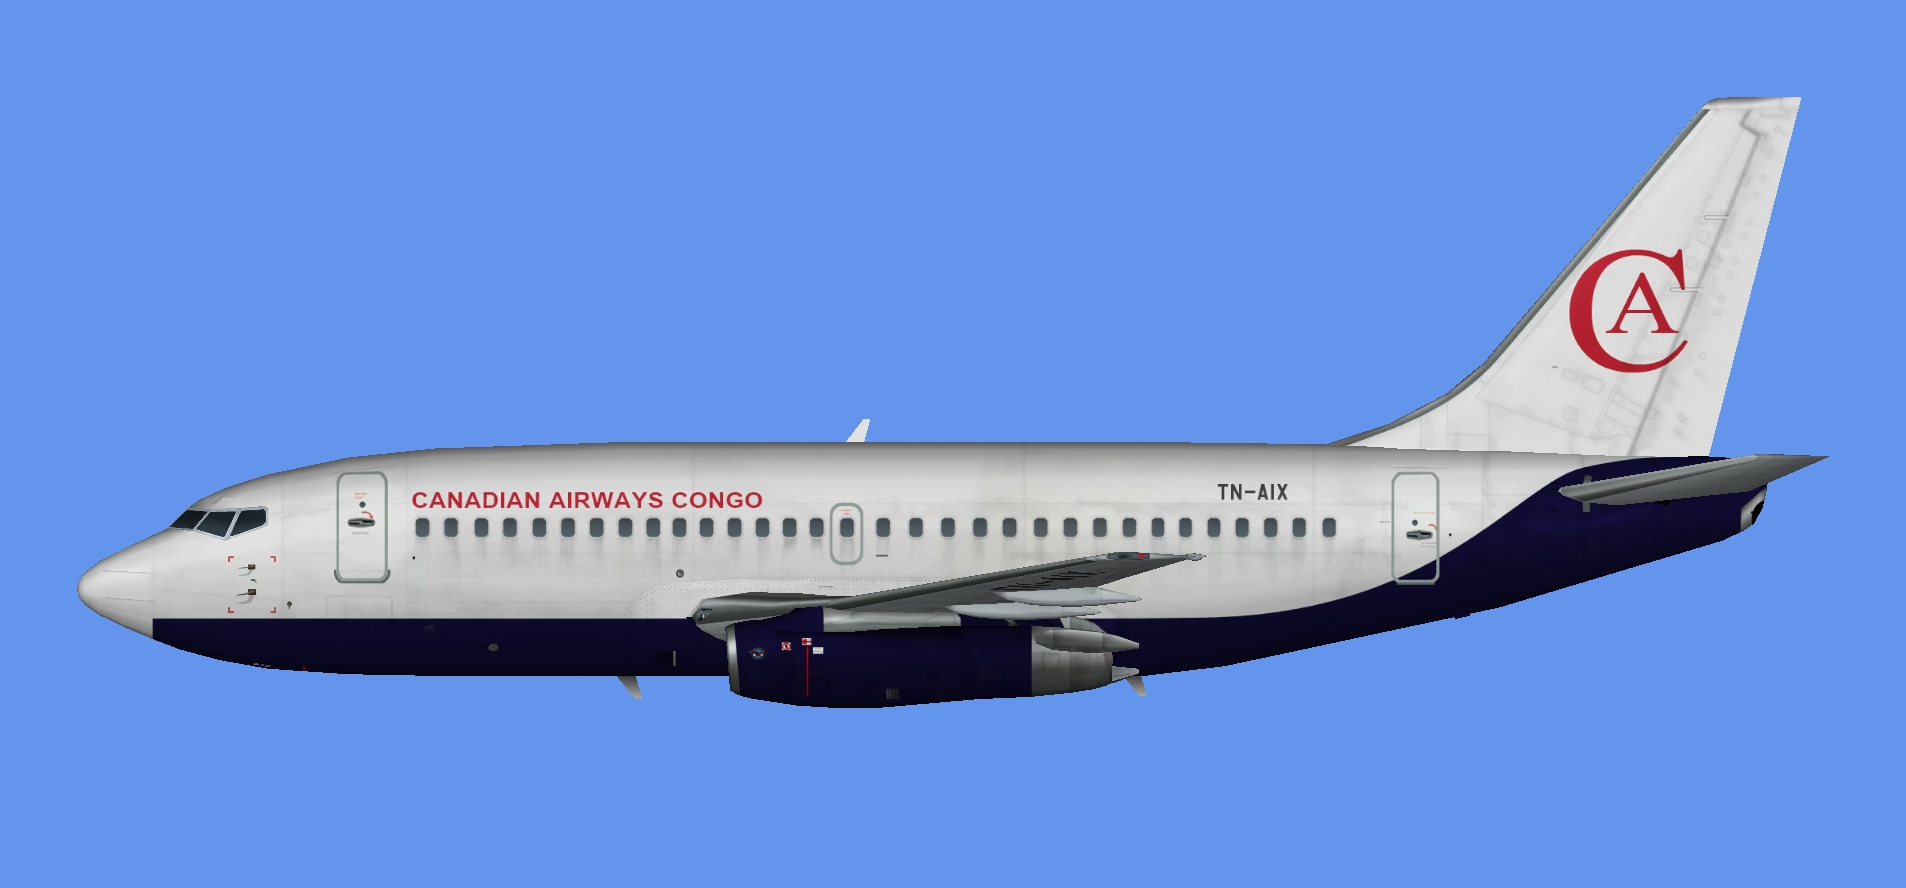 Canadian Airways Congo Boeing 737-200